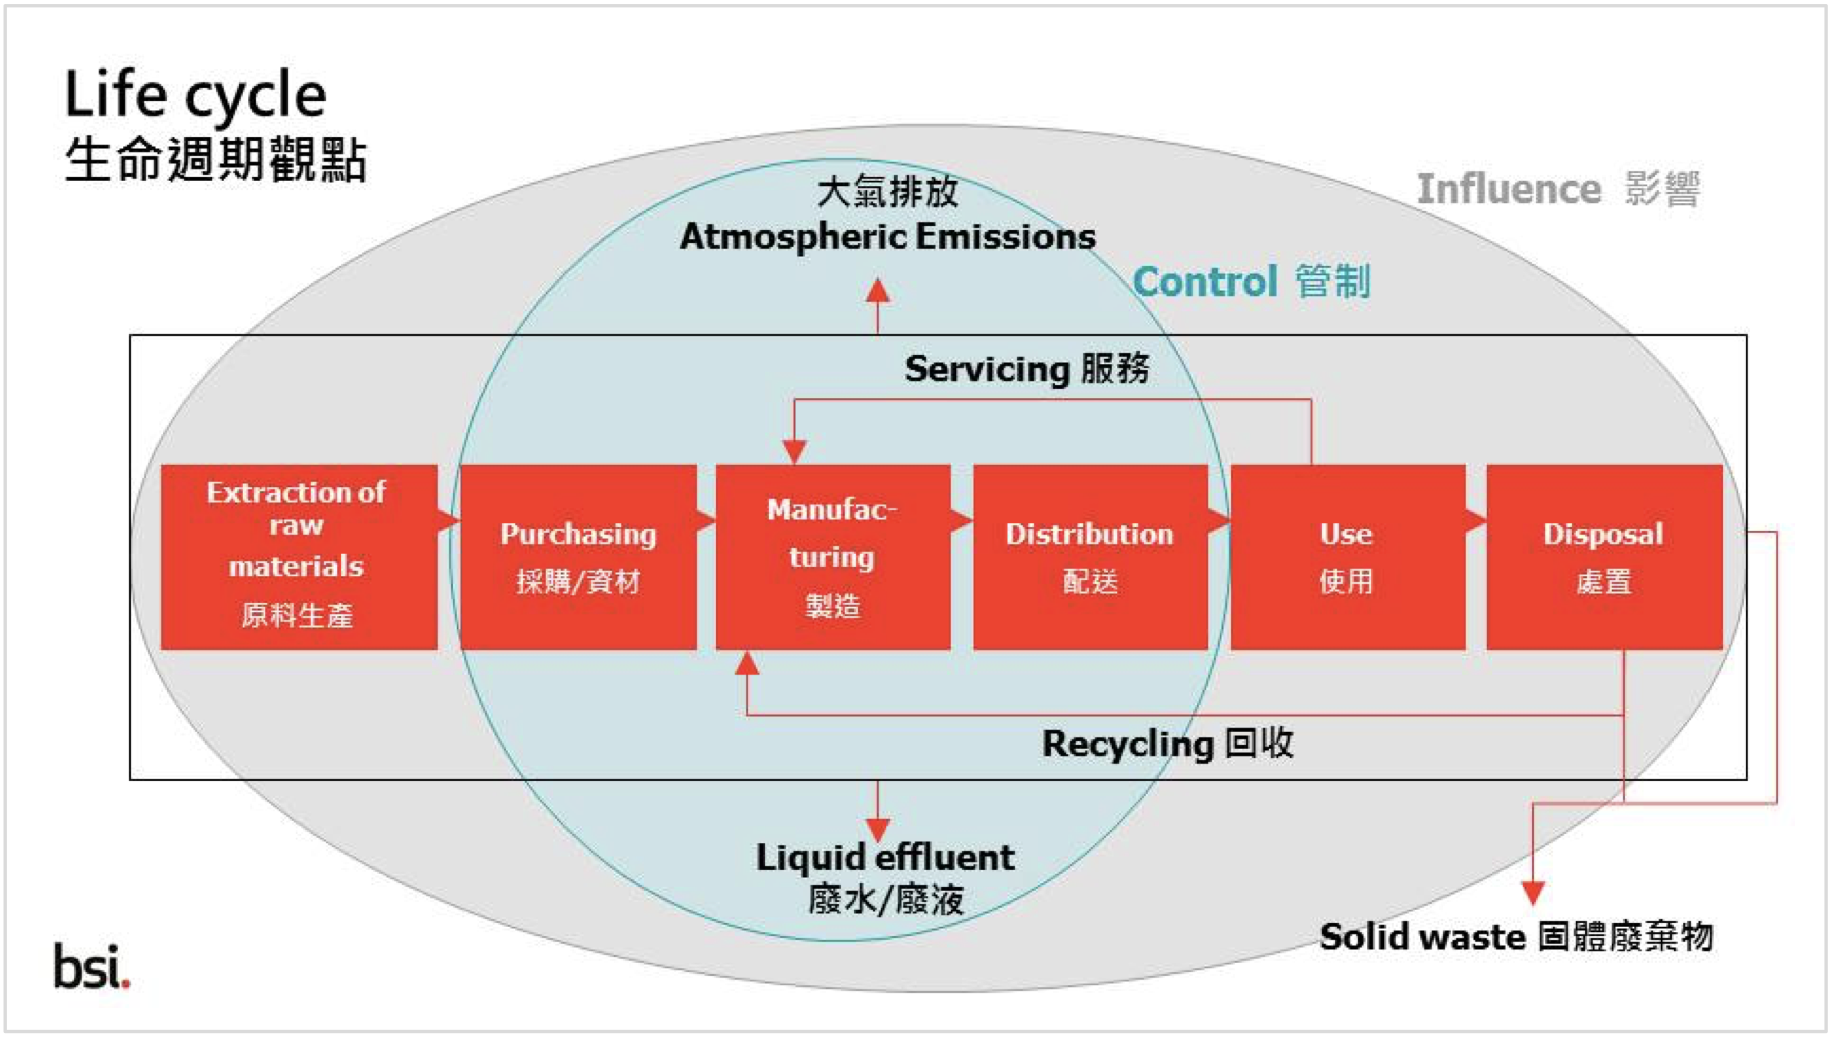 Environmental Management System (EMS) - Life Cycle Diagram (British Standards Institution)